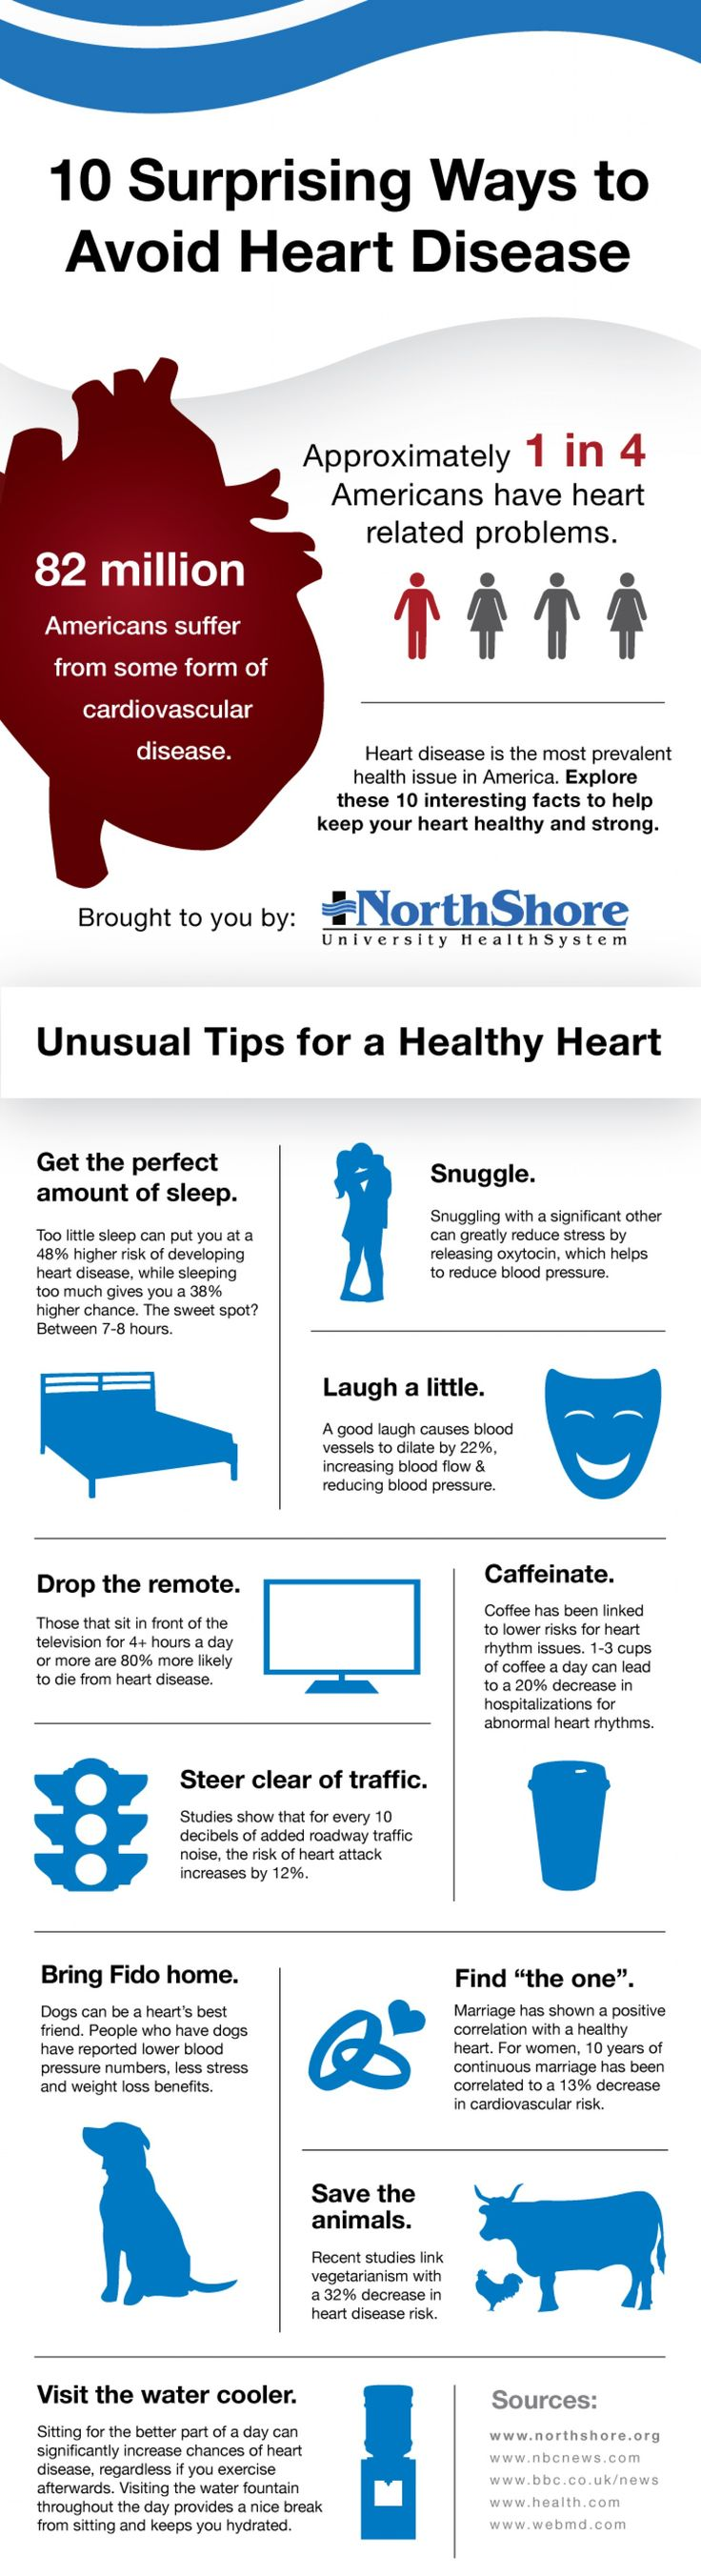 Avoiding heart disease is easier than you'd think! 10 surprising ways to prevent cardiovascular disease.